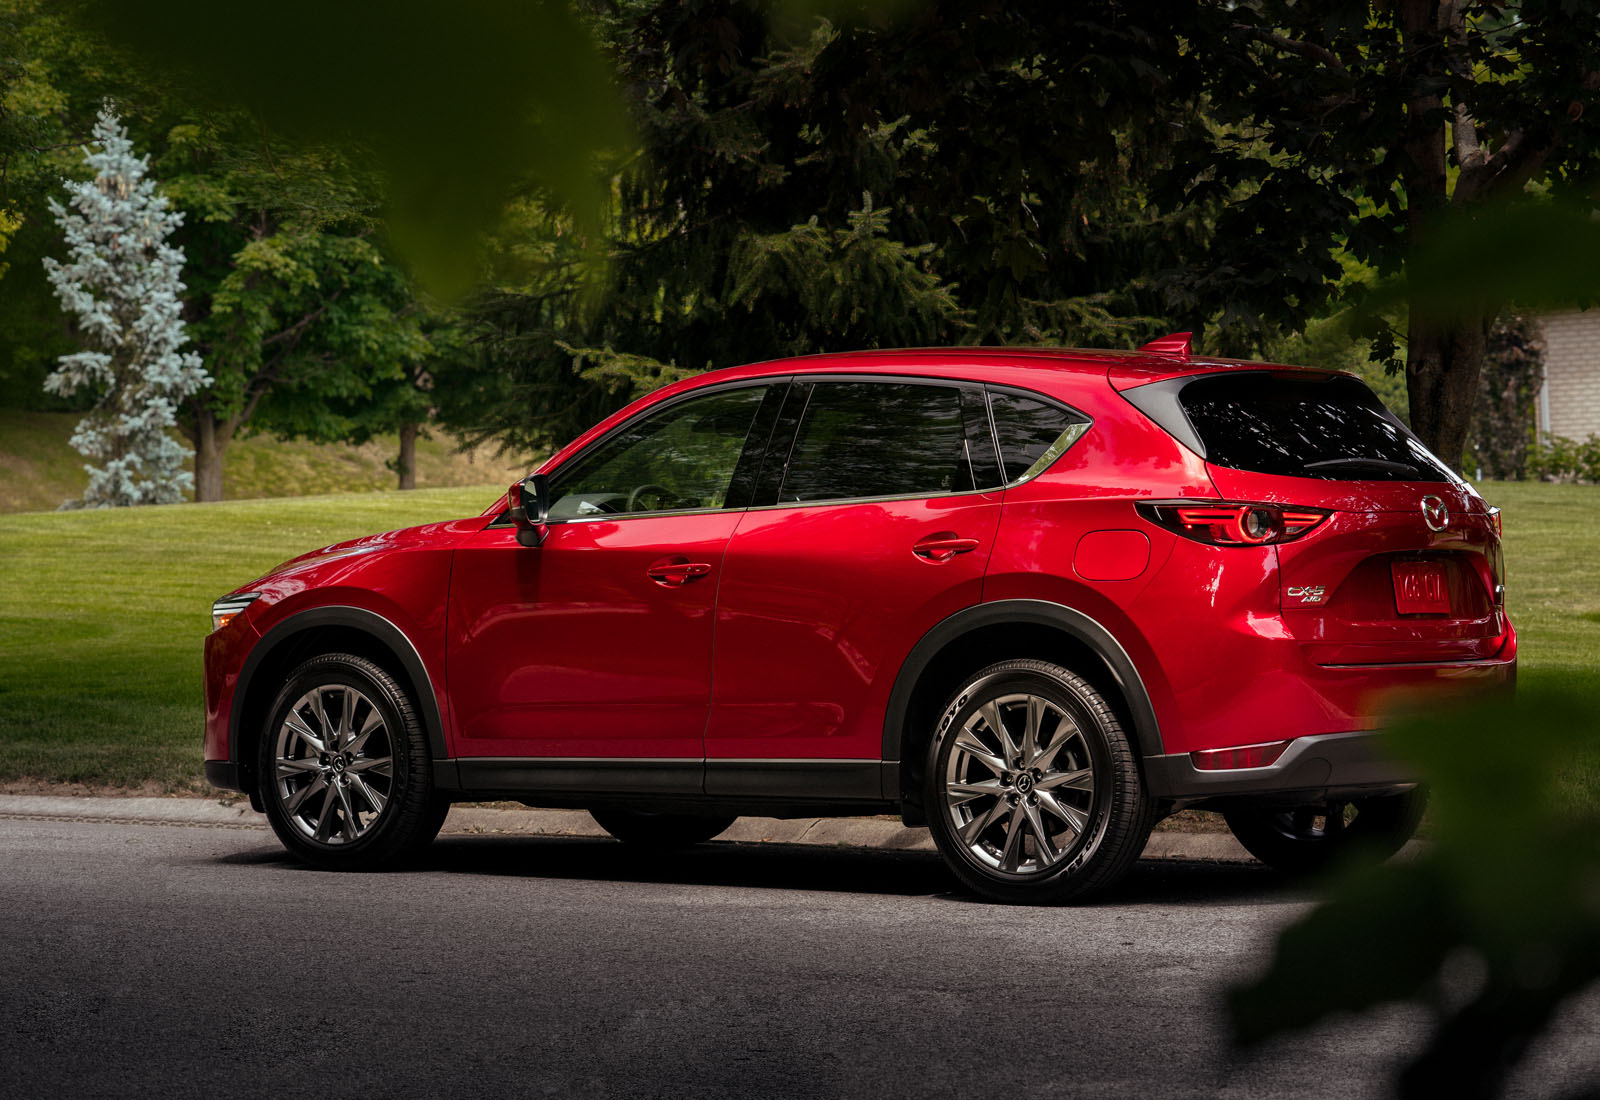 2019 Mazda CX-5 Signature Diesel review